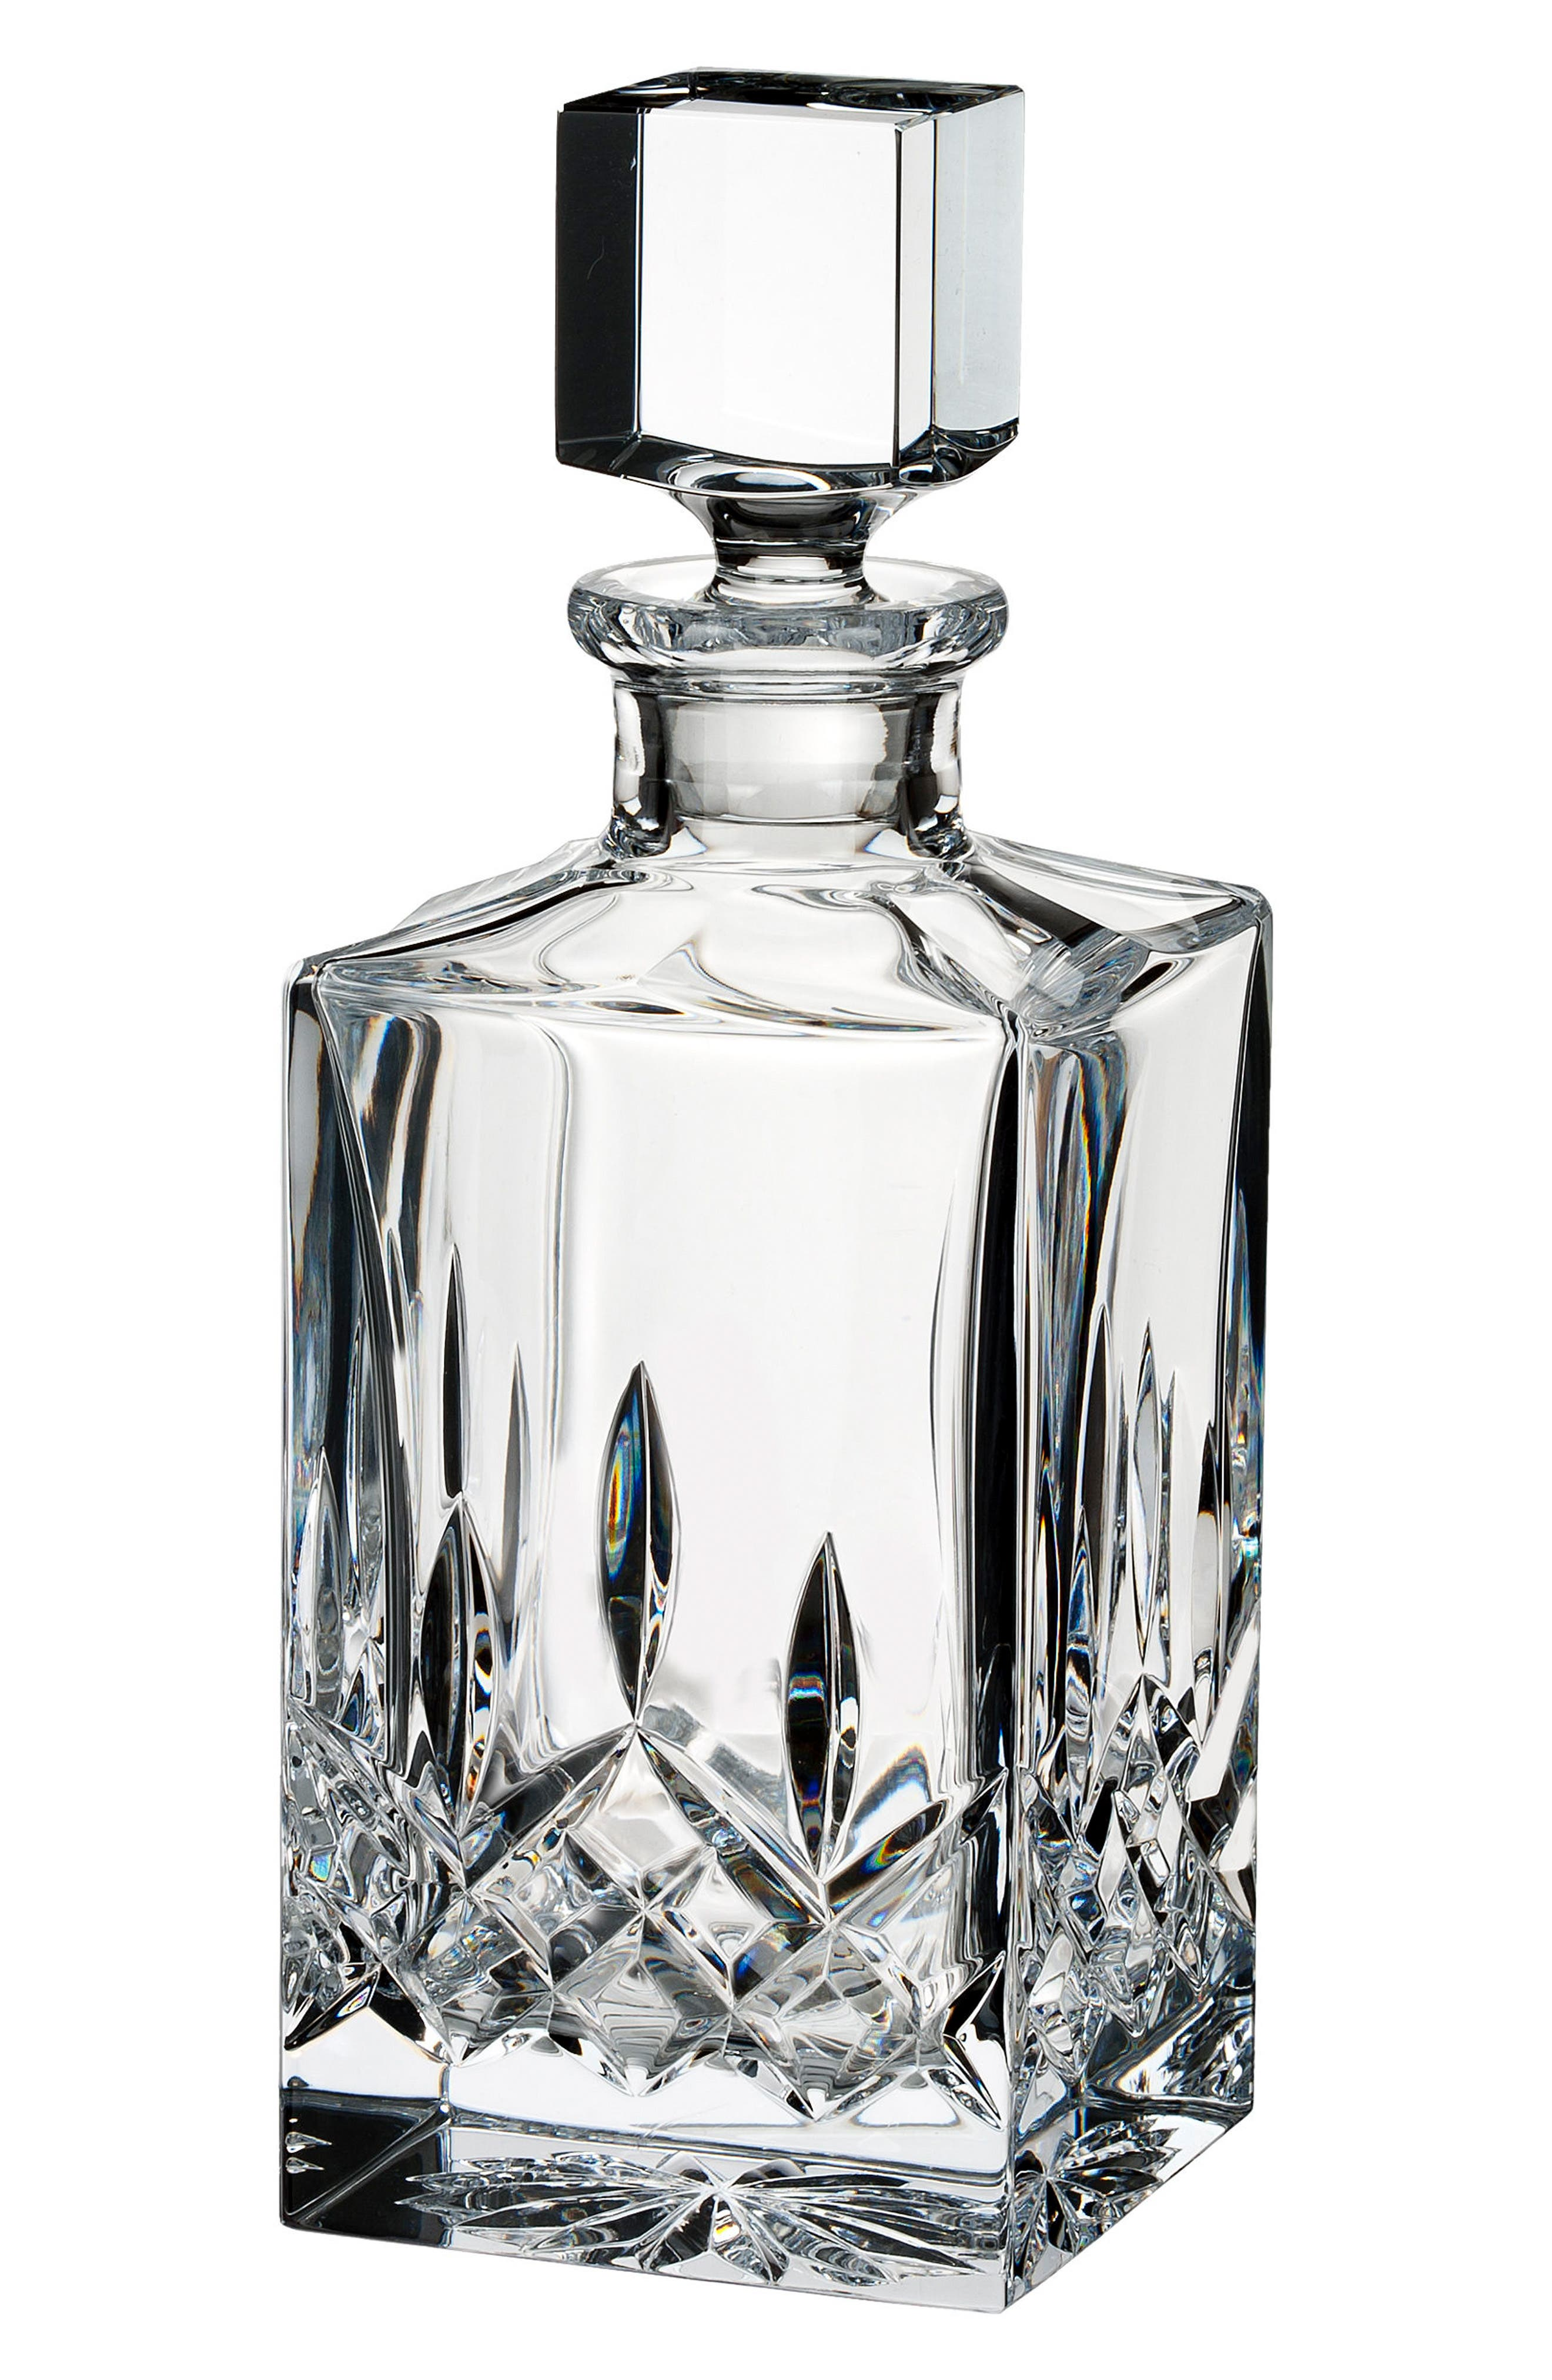 Waterford Lismore Clear Square Lead Crystal Decanter